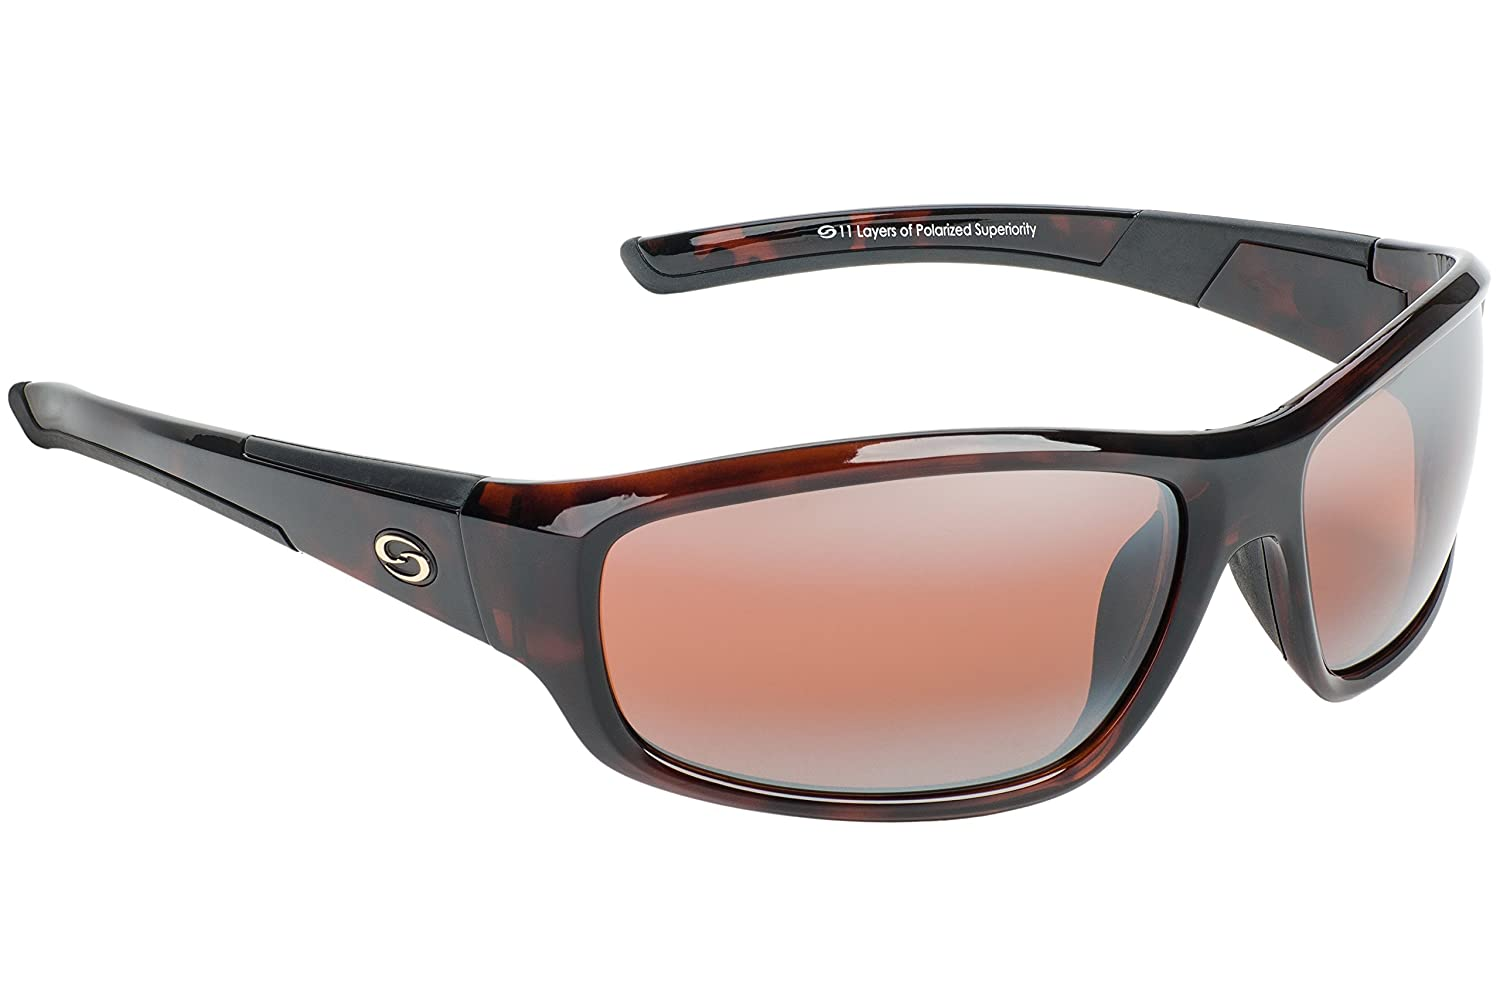 d3ac24af803 Amazon.com  Strike King S11 Optics Bristol-Cloud Polarized Sunglasses with  Shiny Black Frames and Cloud Lenses  Sports   Outdoors